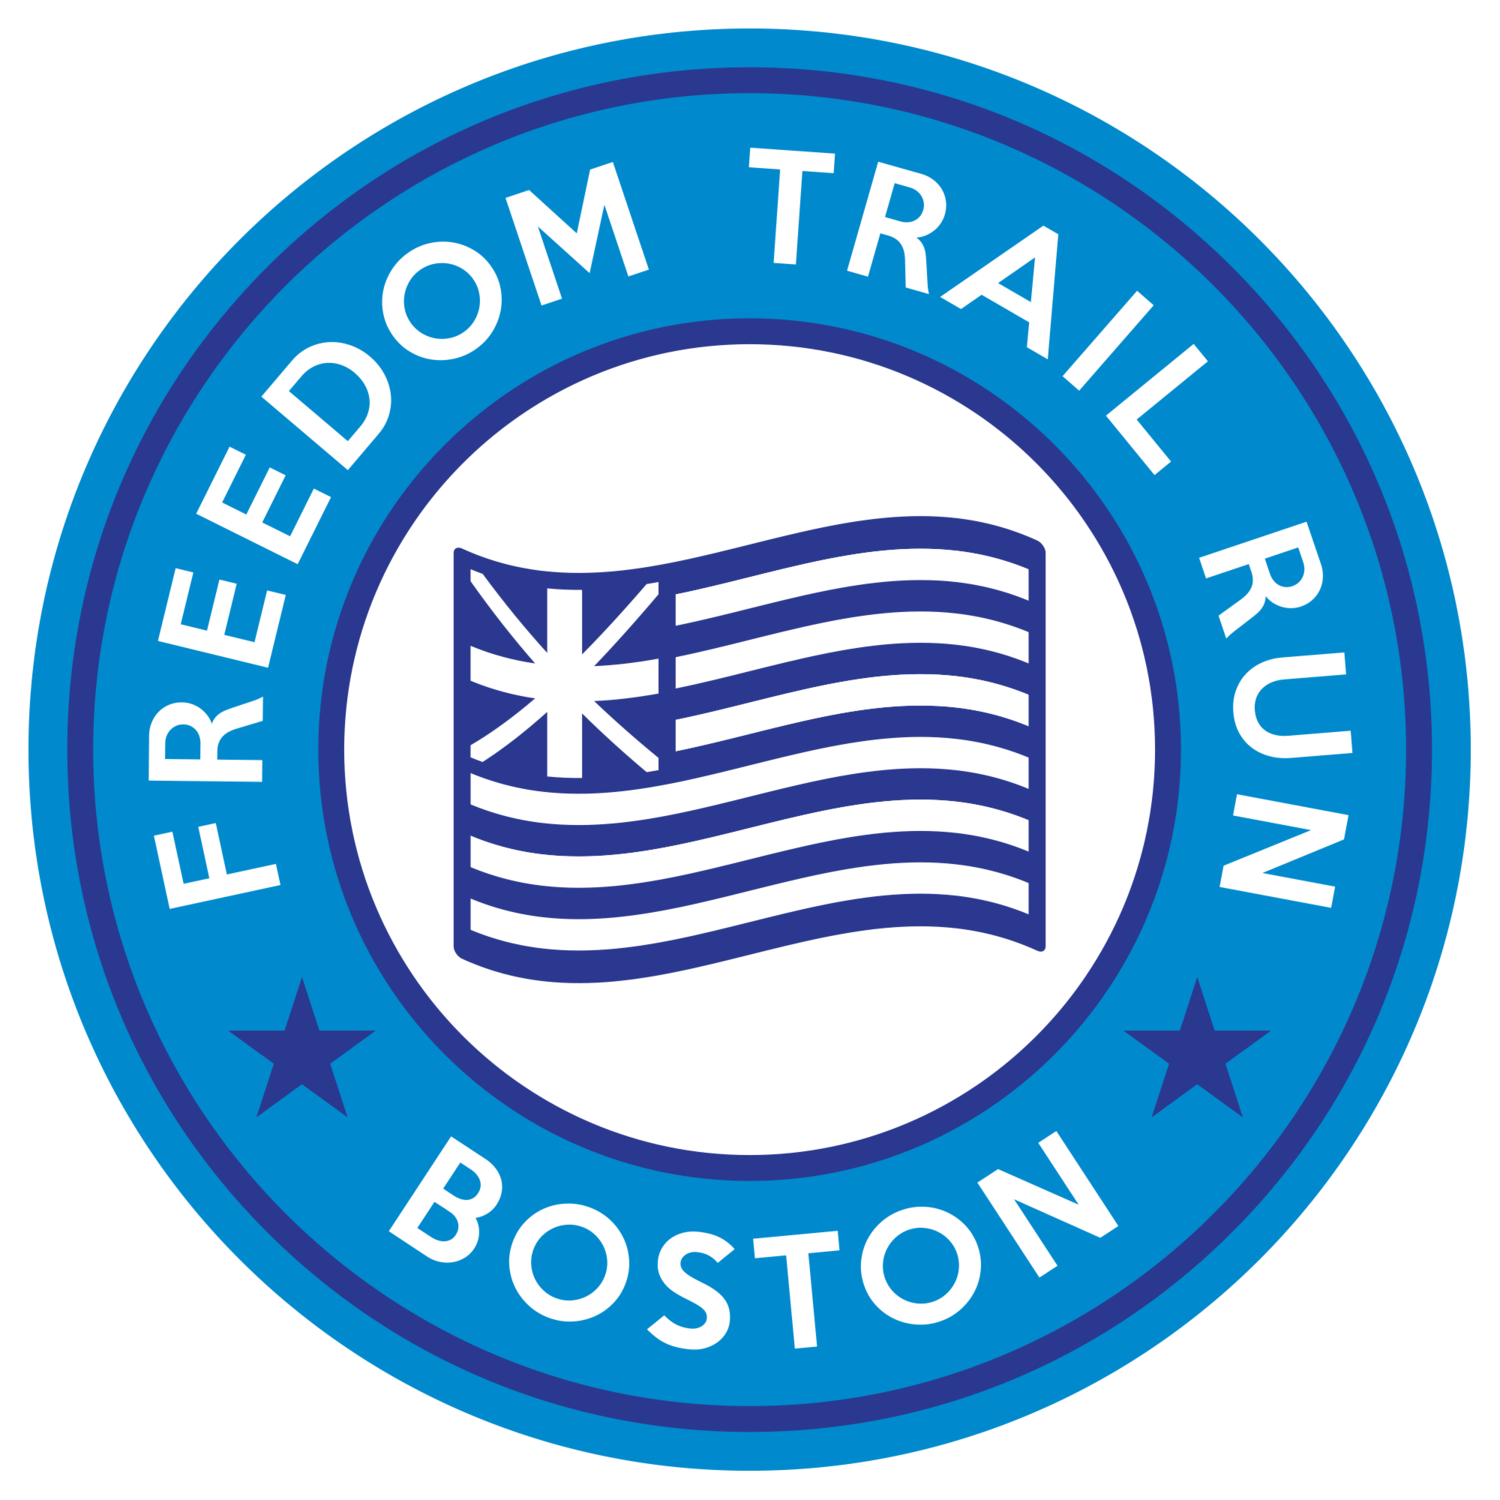 Freedom Trail - 5k Running Tour | Boston, MA